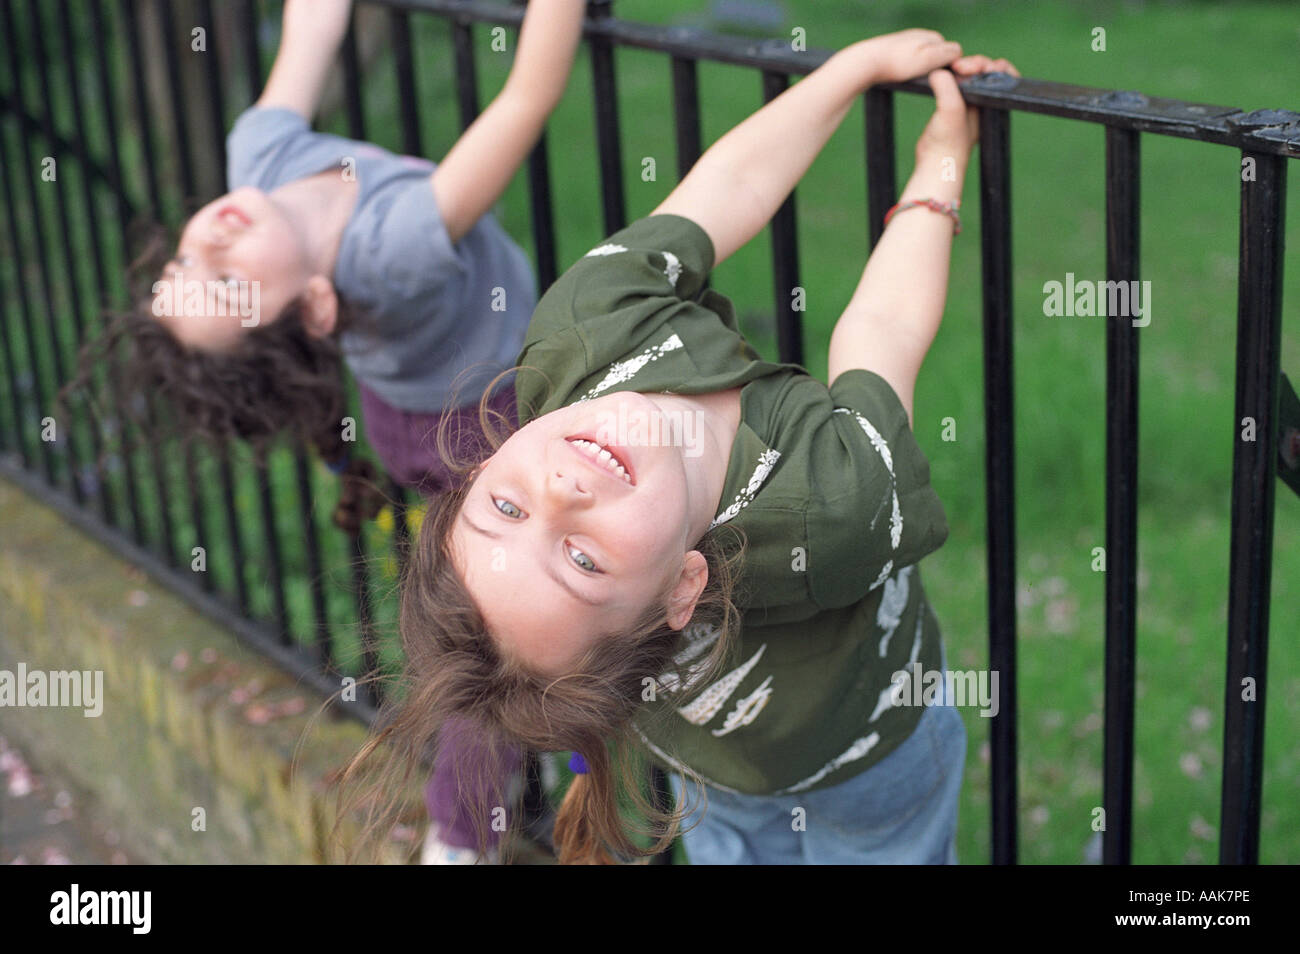 Two six year old girls playing on metal railings, London, UK. Stock Photo